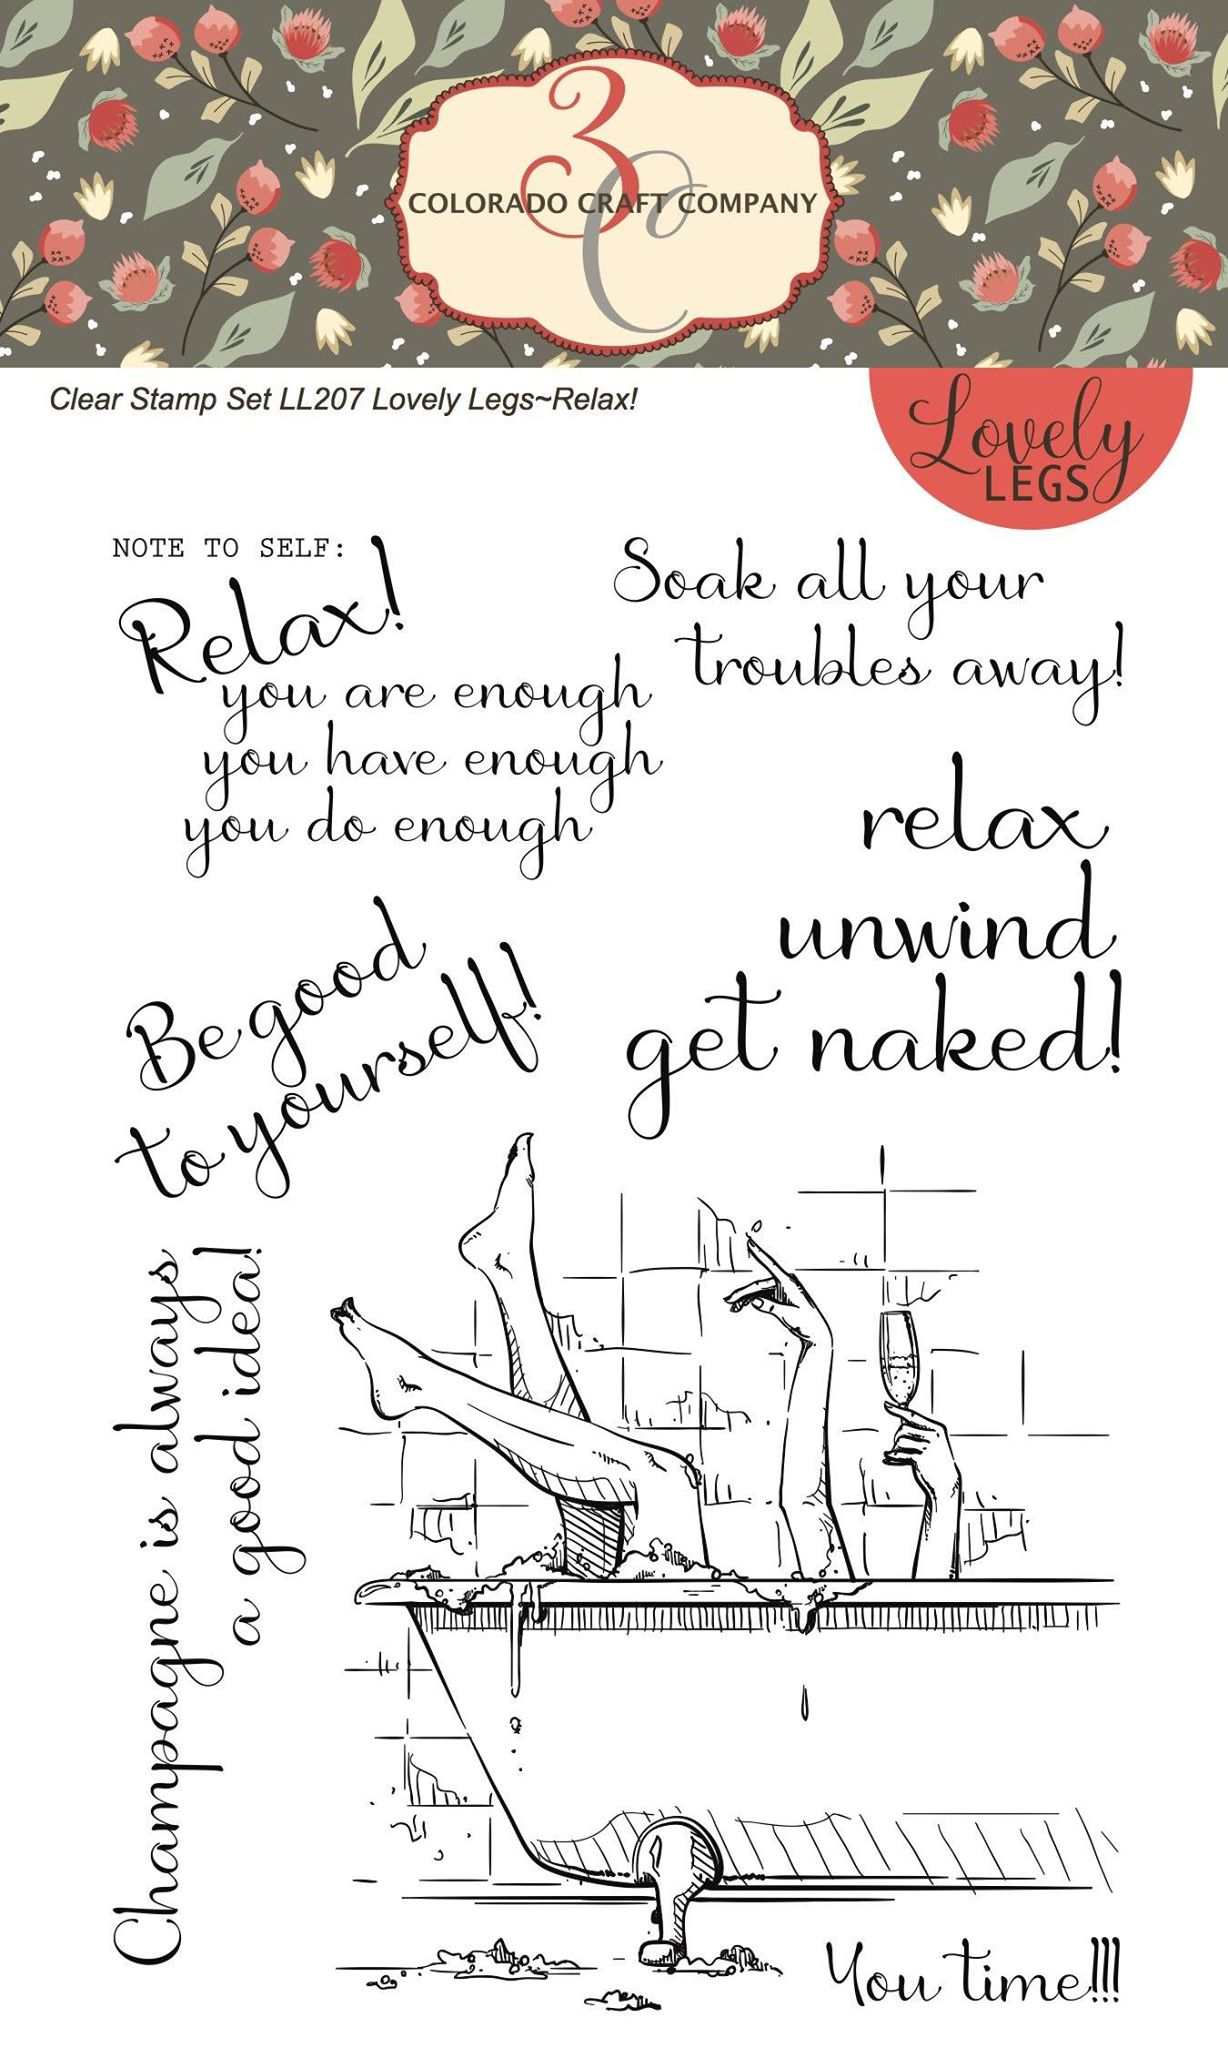 Colorado Craft Co. - Lovely Legs Relax Stamp Set